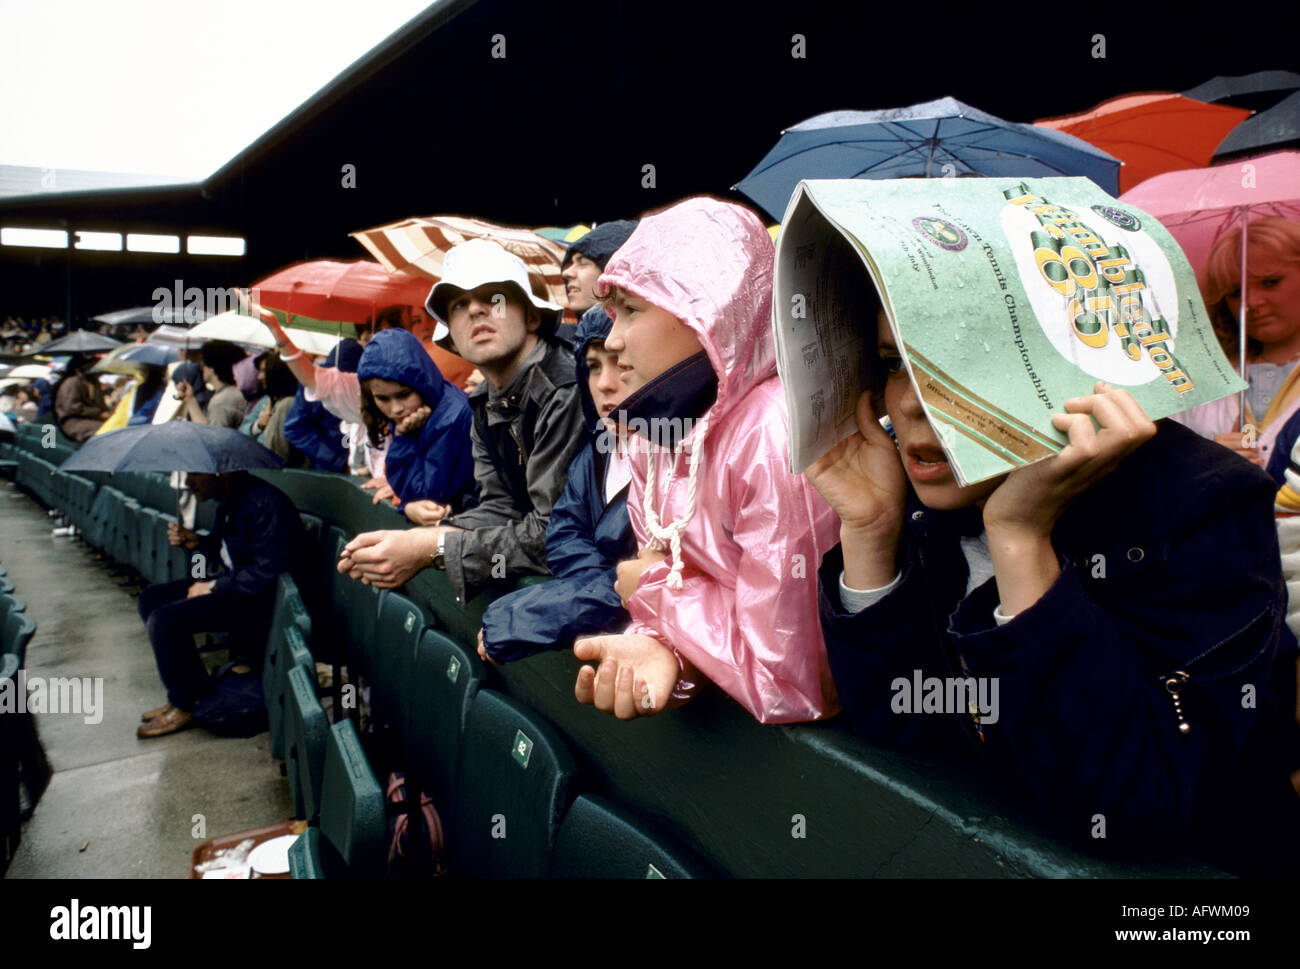 SPECTATORS HOLDING UMBRELLAS MAN USING PROGRAMME SHELTERING FROM RAIN AT THE WIMBLEDON TENNIS CHAMPIONSHIPS HOMER SYKES - Stock Image